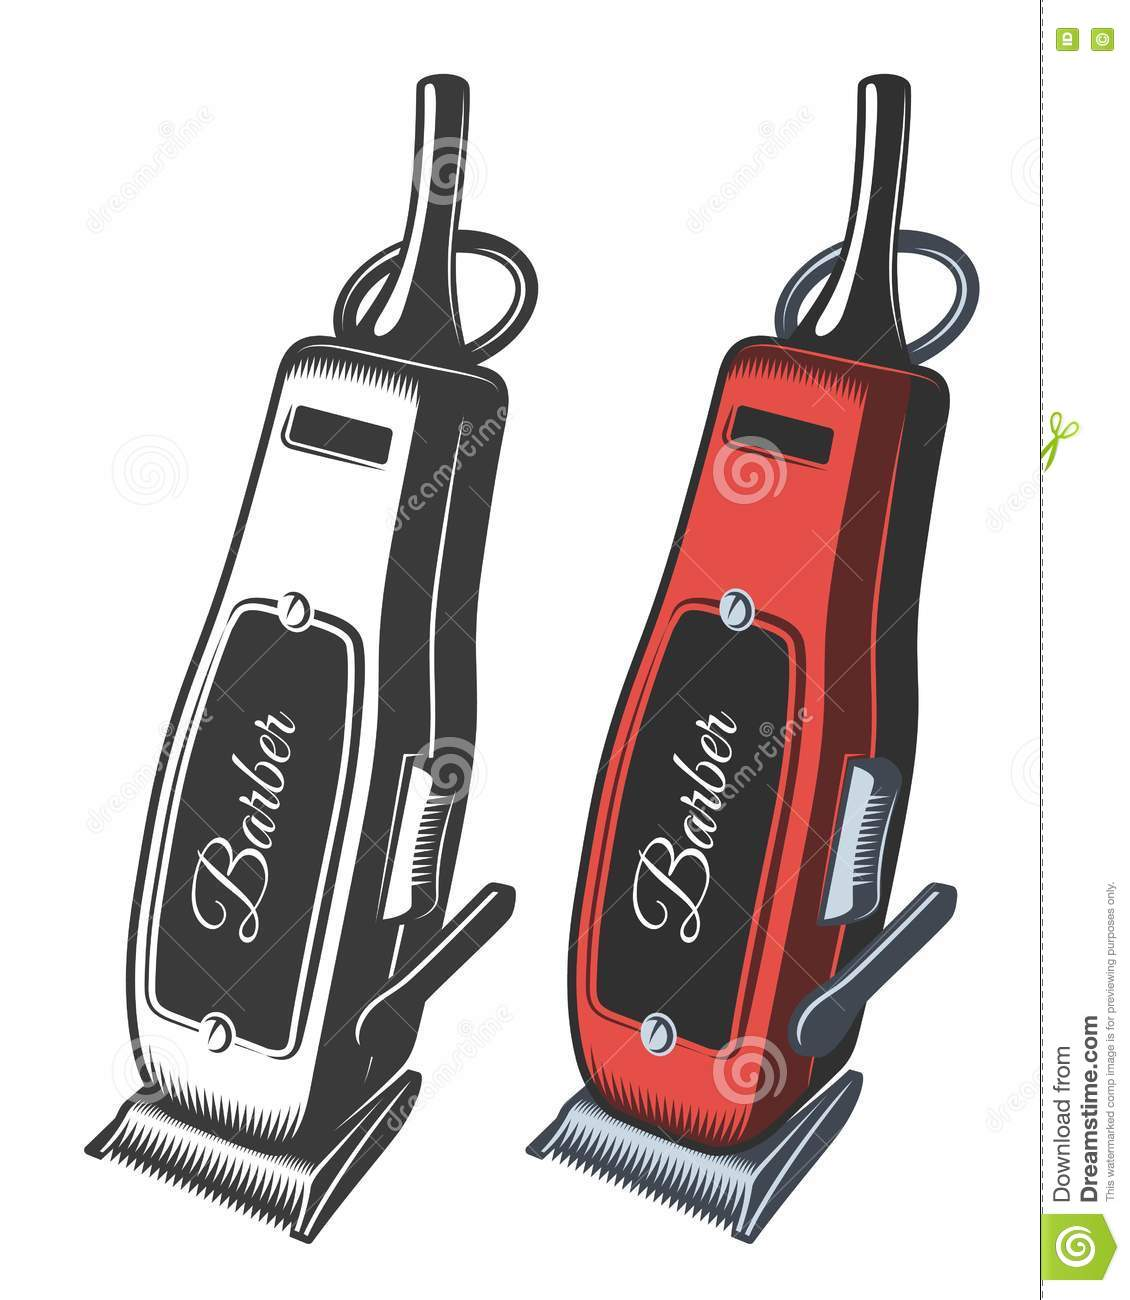 Illustration Of Hair Clipper Stock Vector Illustration Of Electrical Haircut 80524681